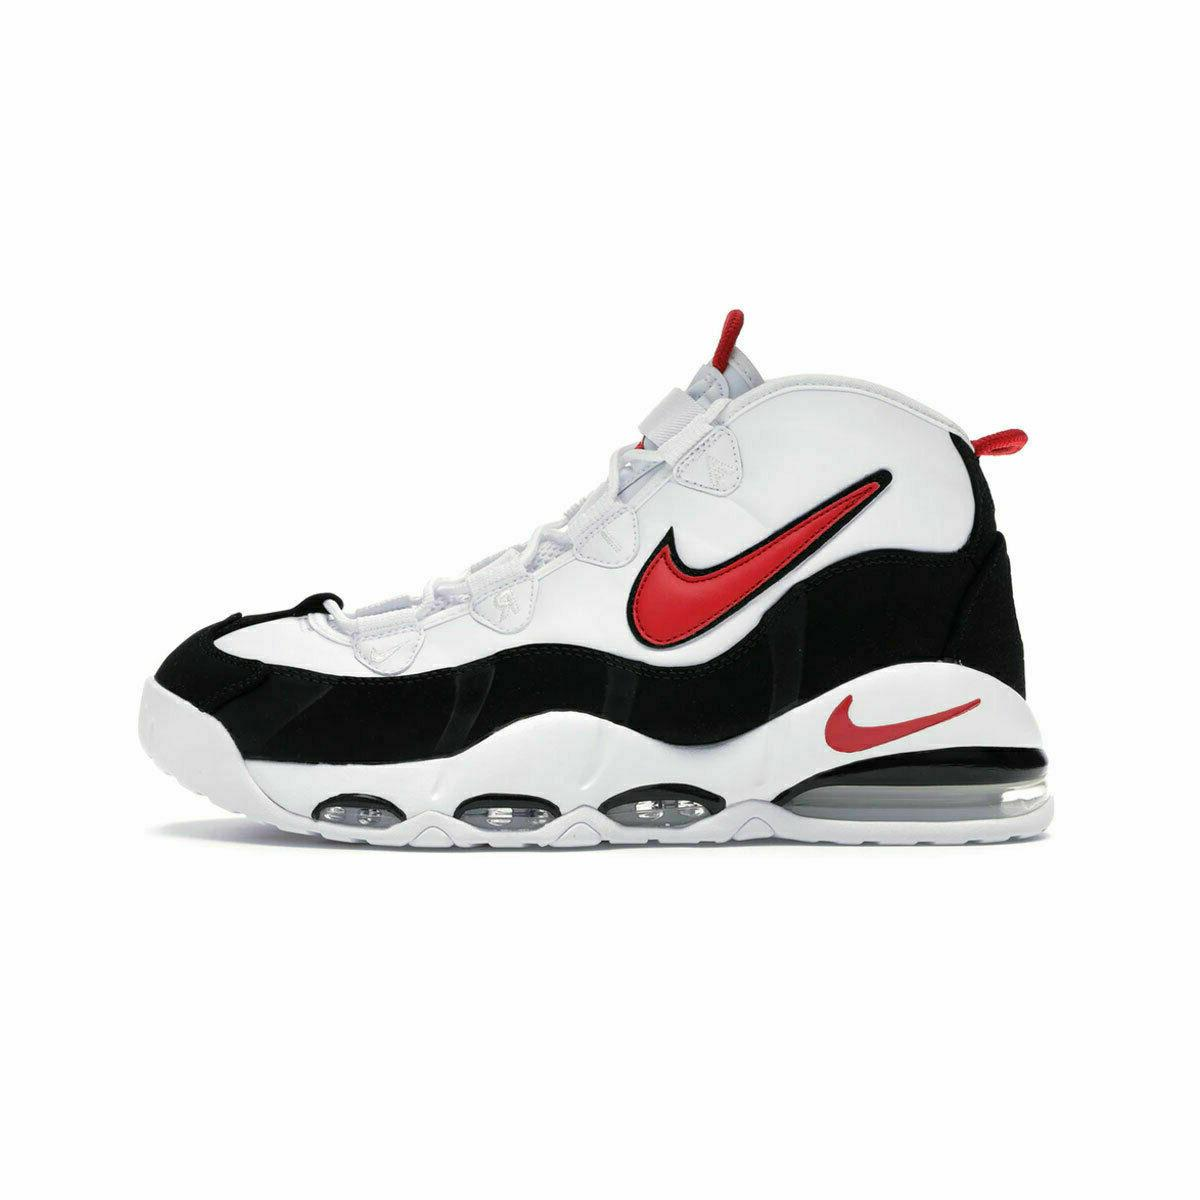 air max uptempo 95 men s basketball